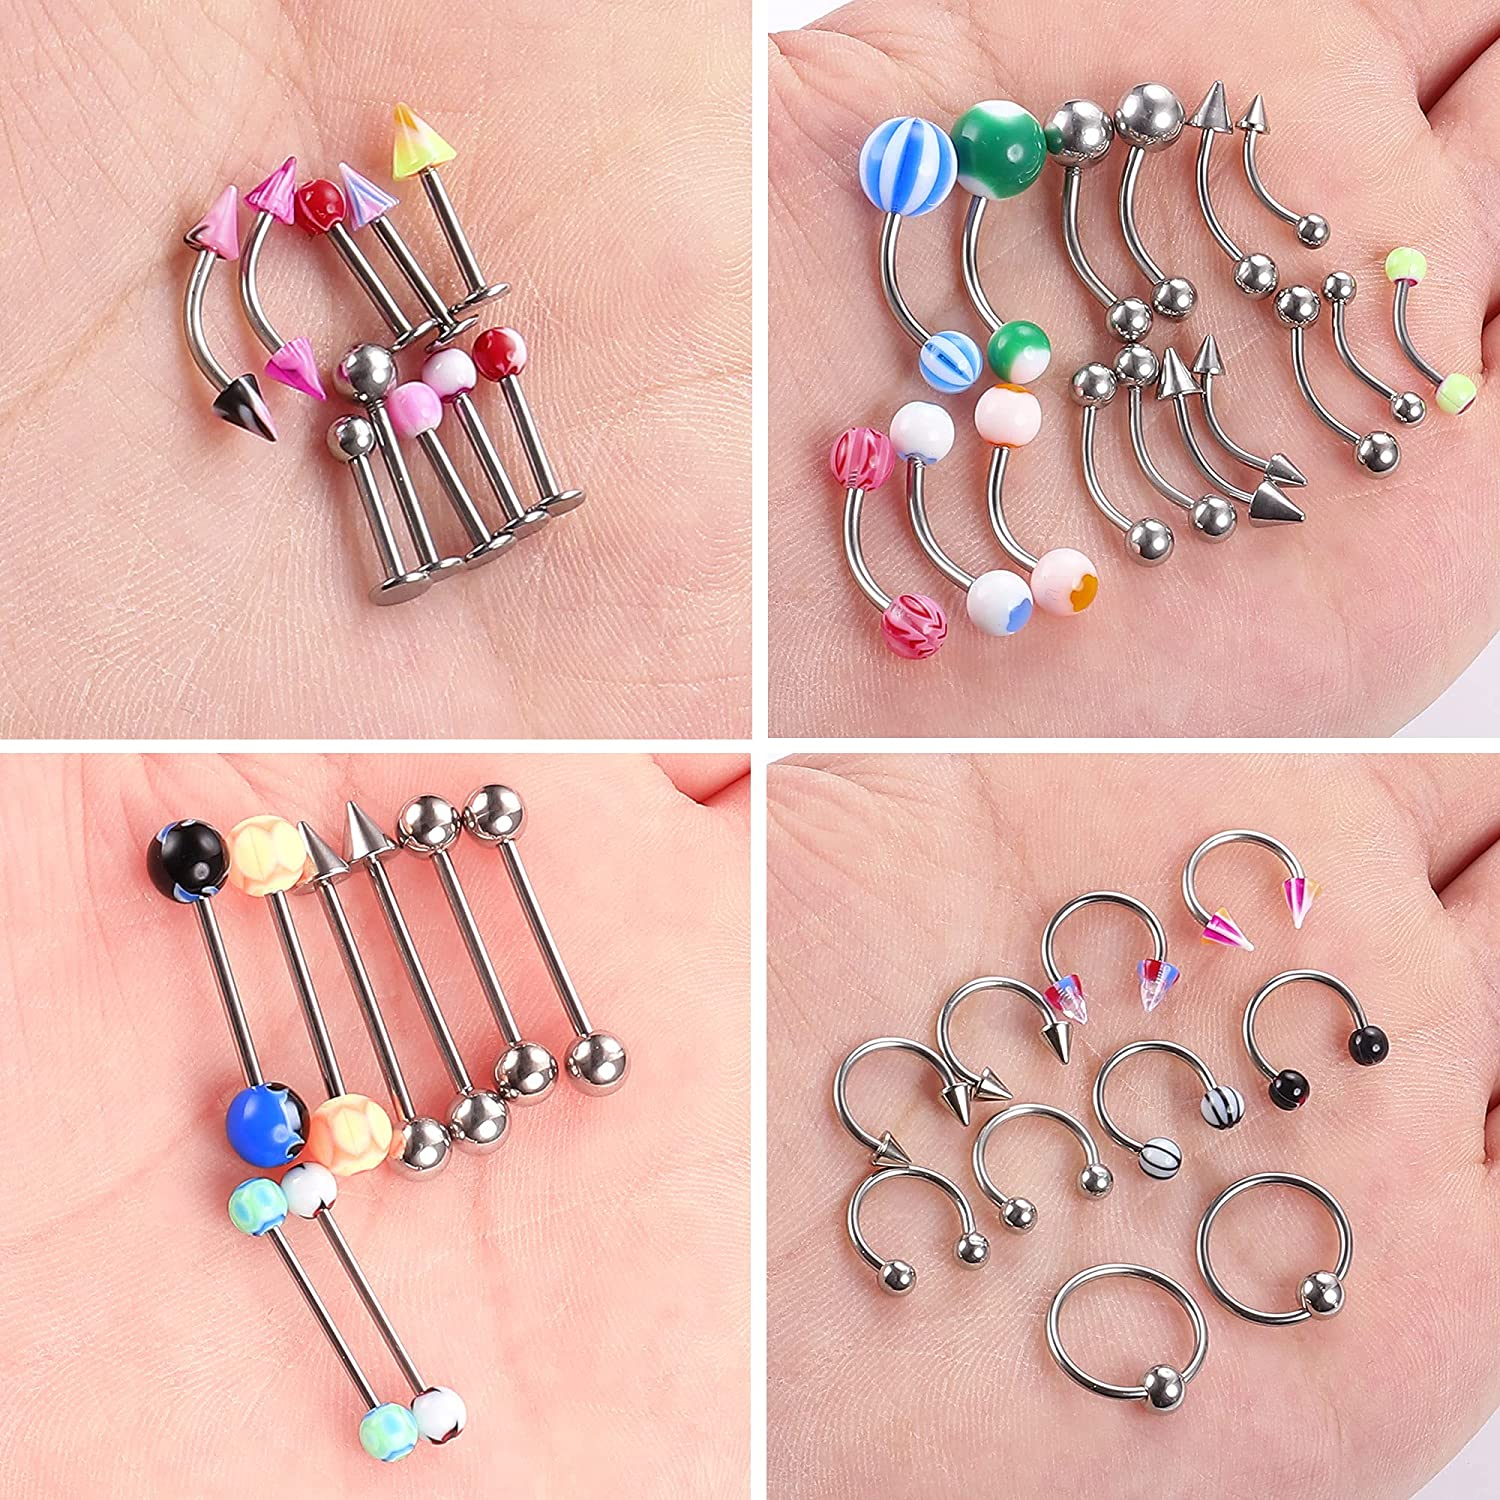 Ubjuliwa 185pcs Body Piercing Jewelry for All Piercings, Tongue Nipple Rings Eyebrow Lip Belly Button Barbell Nose Piercing Tragus Navel Body Jewelry for Women Piercings 14g-18g